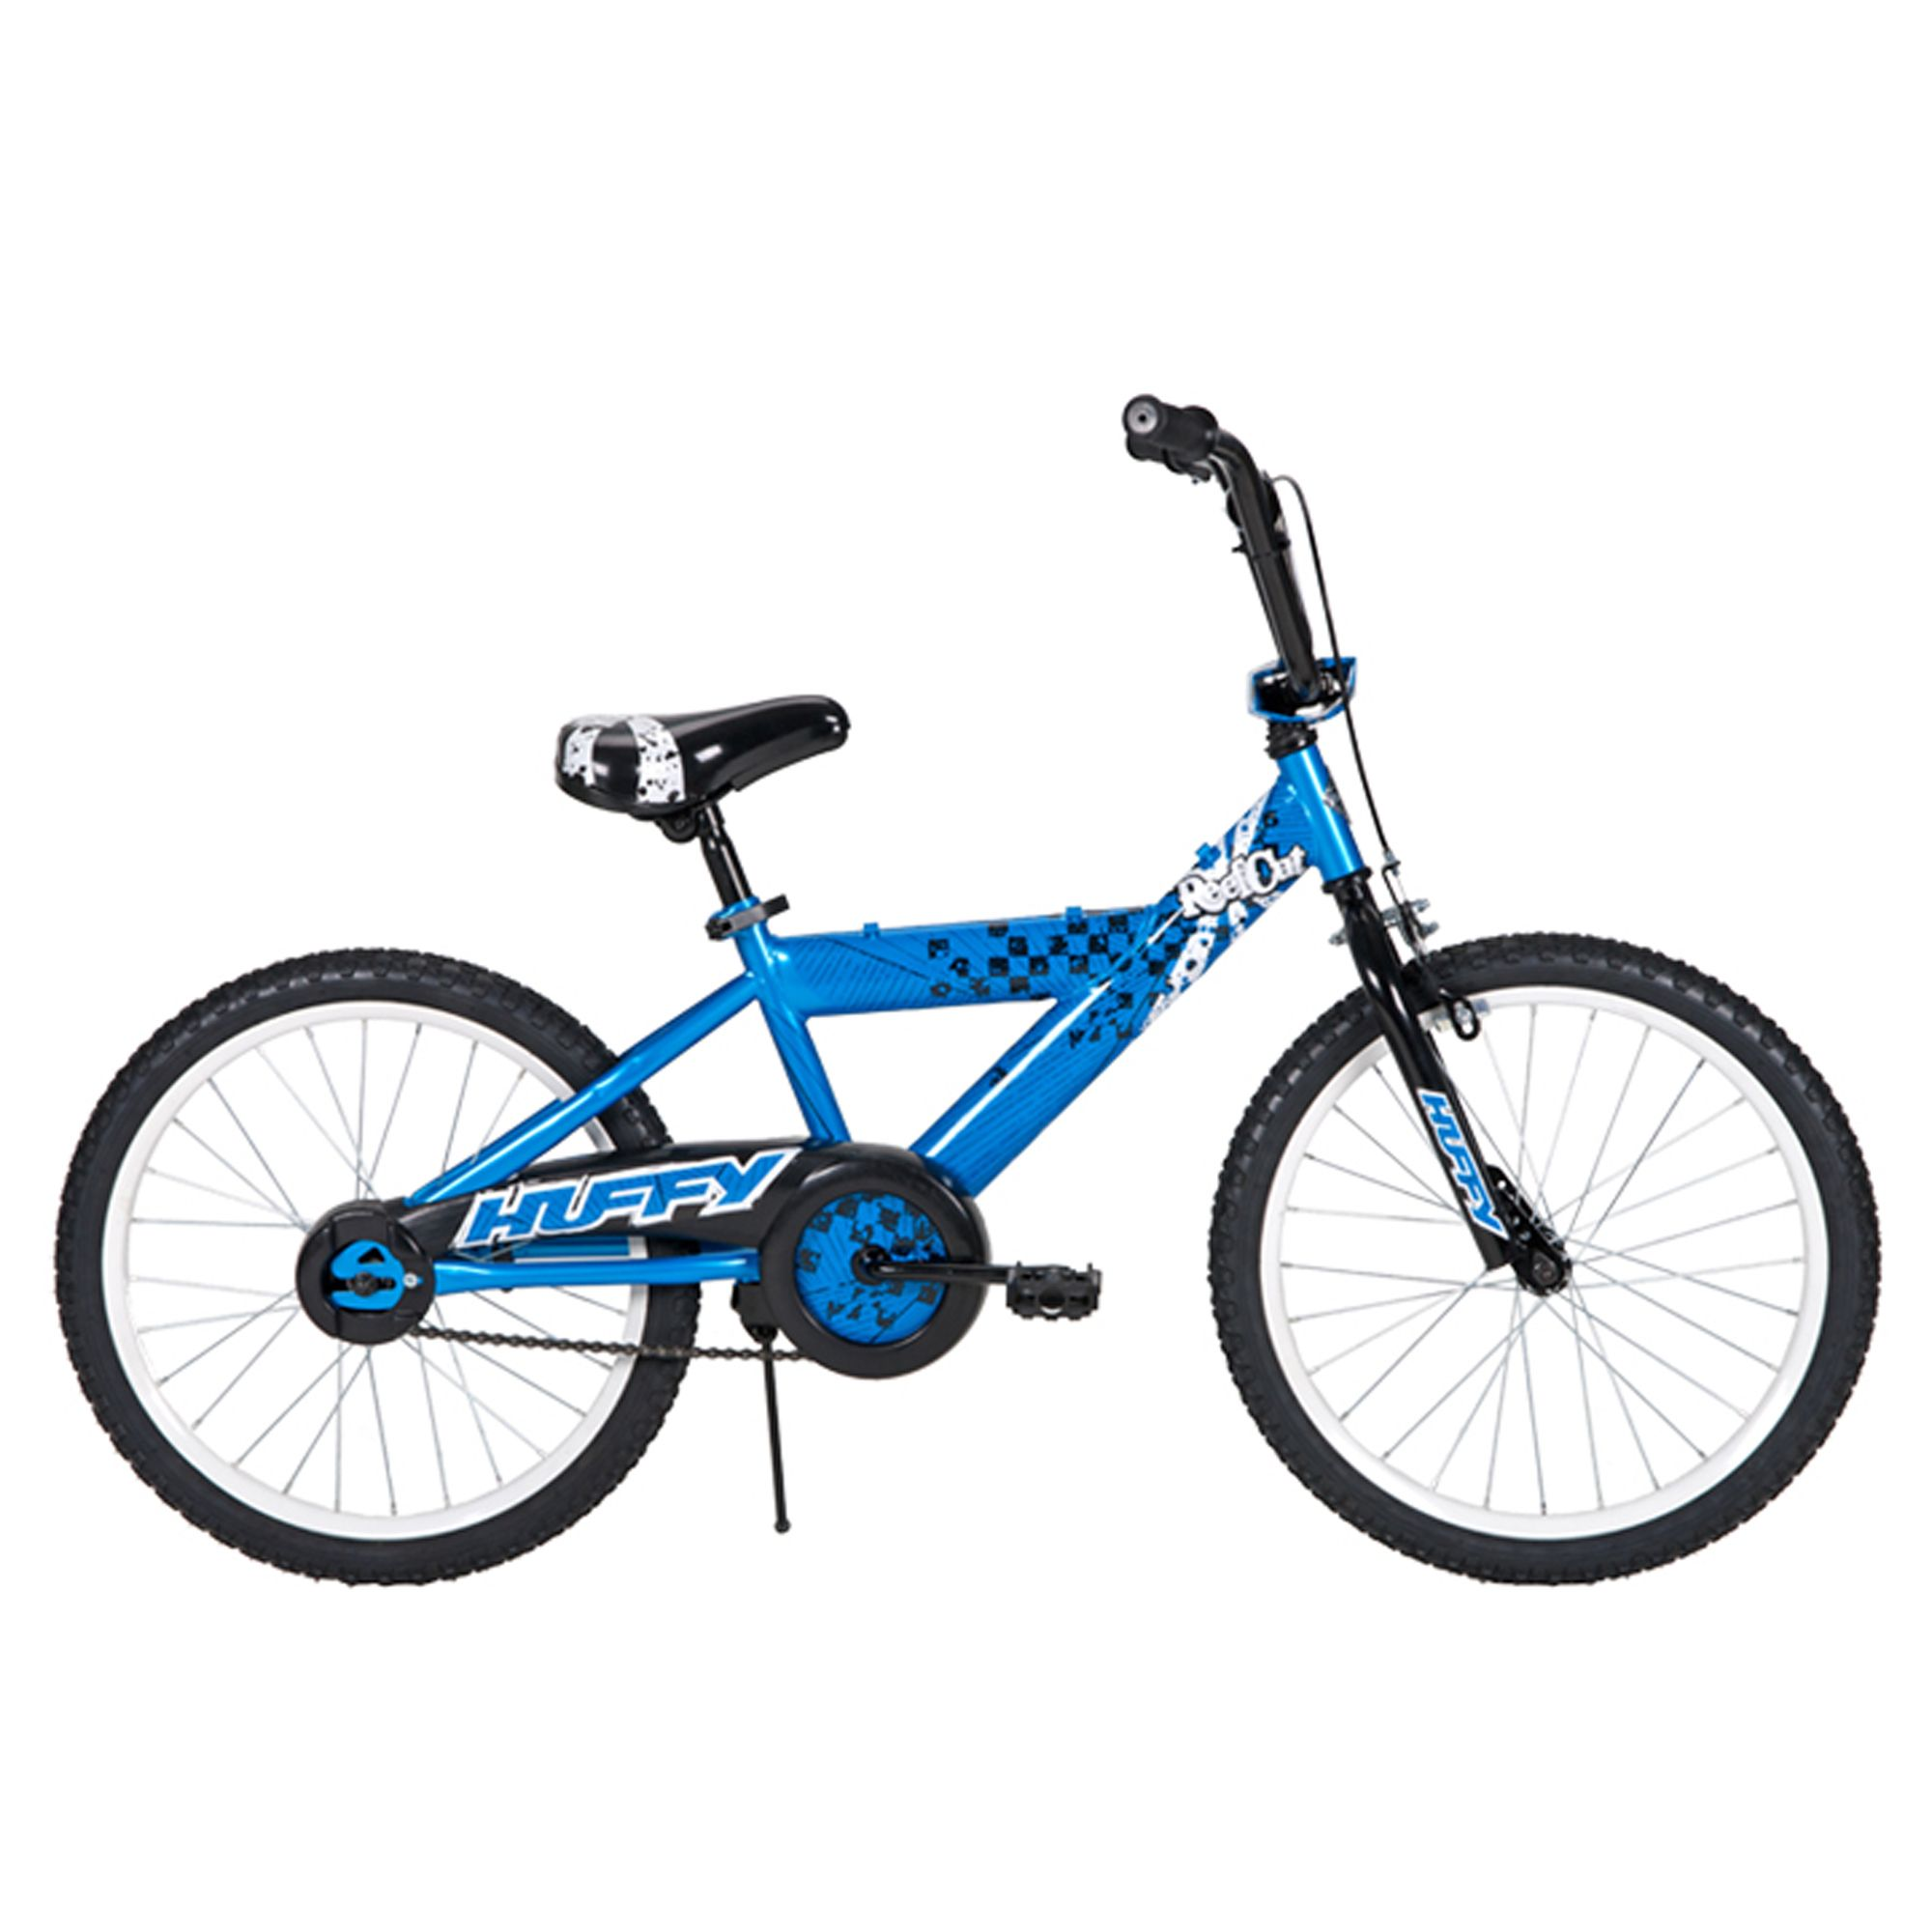 Huffy Boys Reef Cut 20in. Bicycle PartNumber: 00628563000P KsnValue: 00628563000 MfgPartNumber: 28563